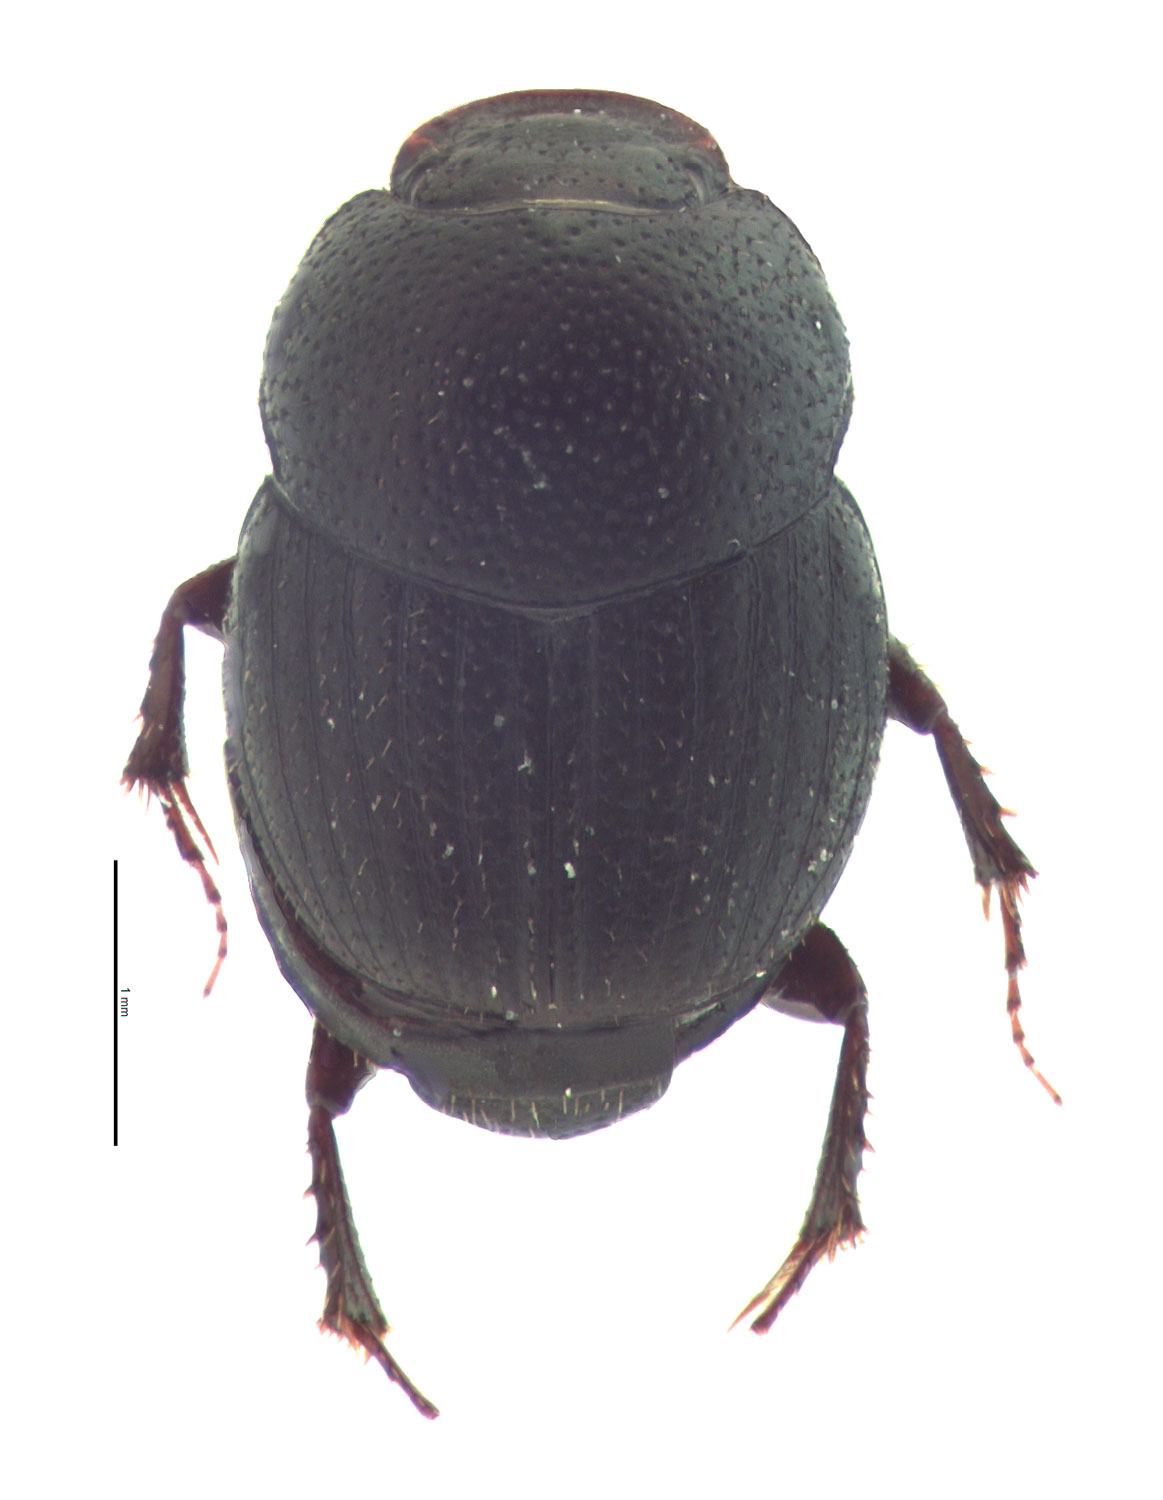 Onthophagus oklahomensis male; photo by E.L. Engasser